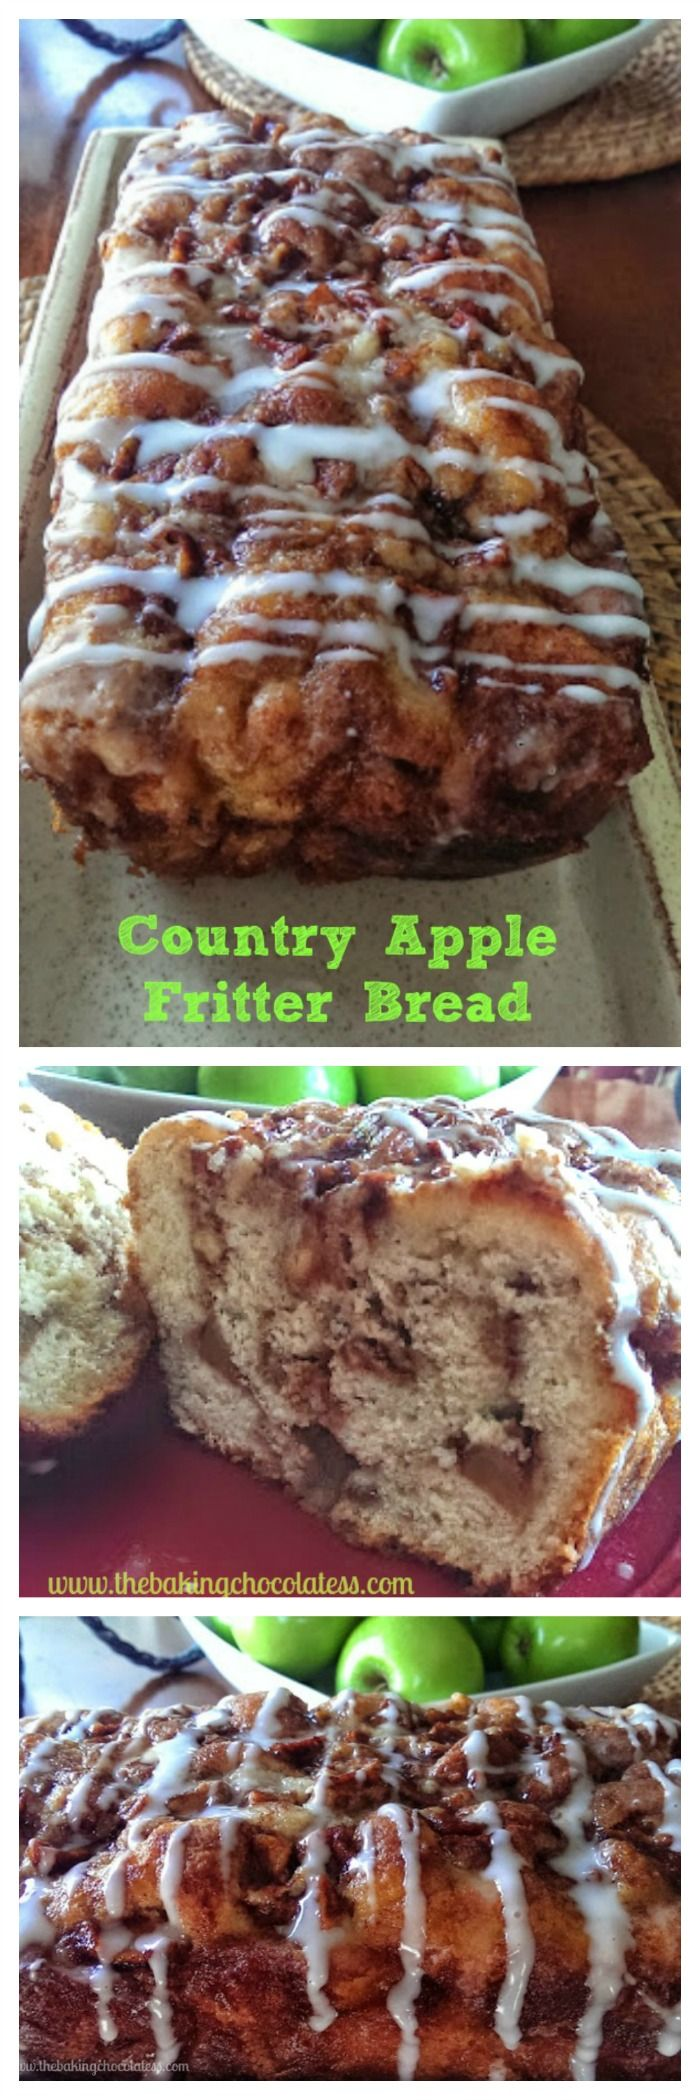 This Awesome Country Apple Fritter Bread is one of the top recipes on the blog! It's so versatile, delicious and doesn't last long! It's no wonder! Hope